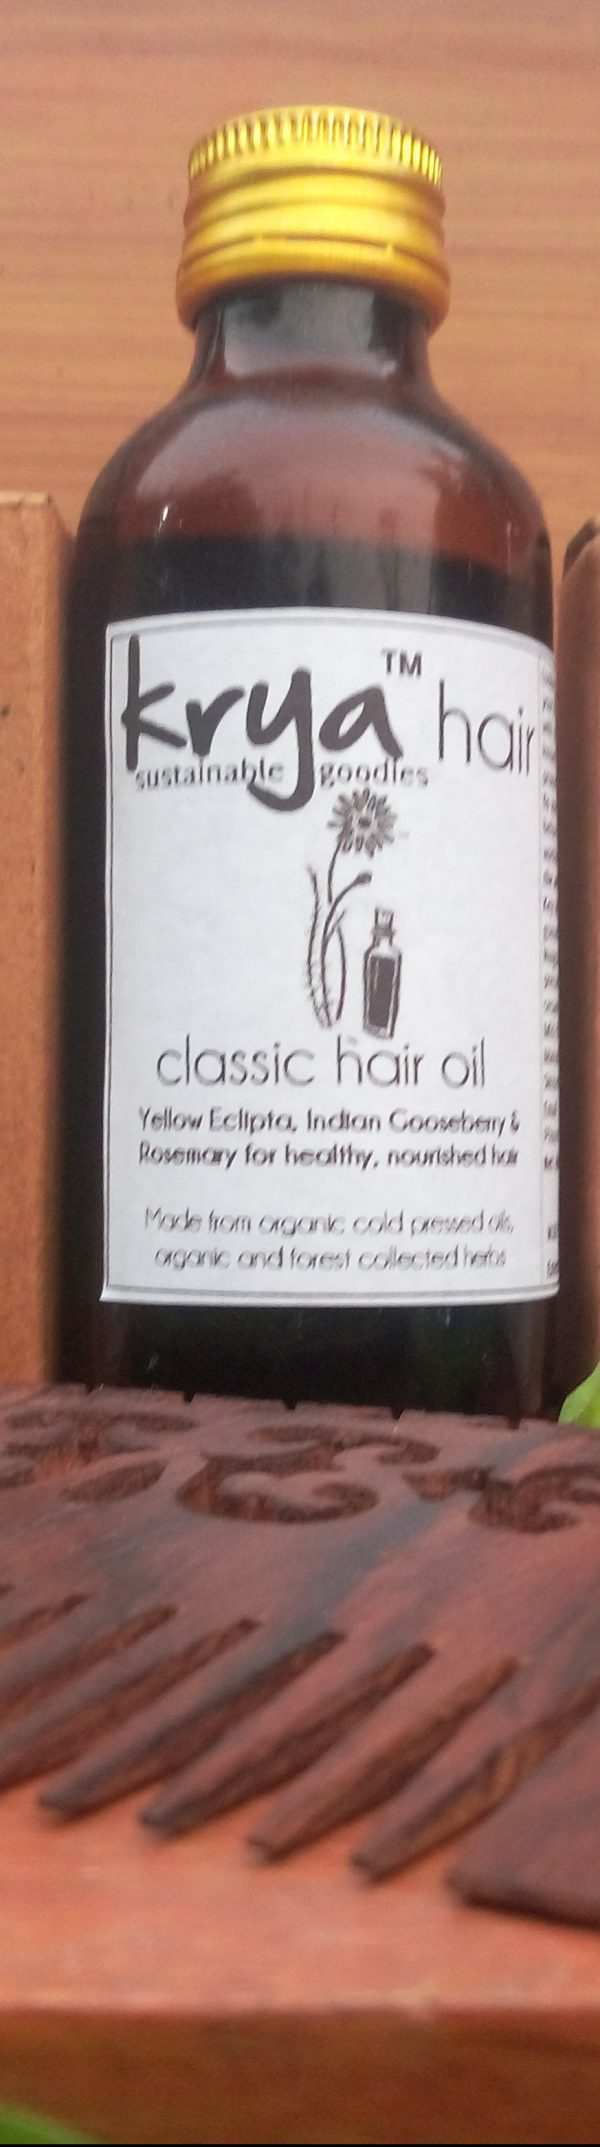 Classic hair oil nourishes, balances oil , cools and strengthens hair